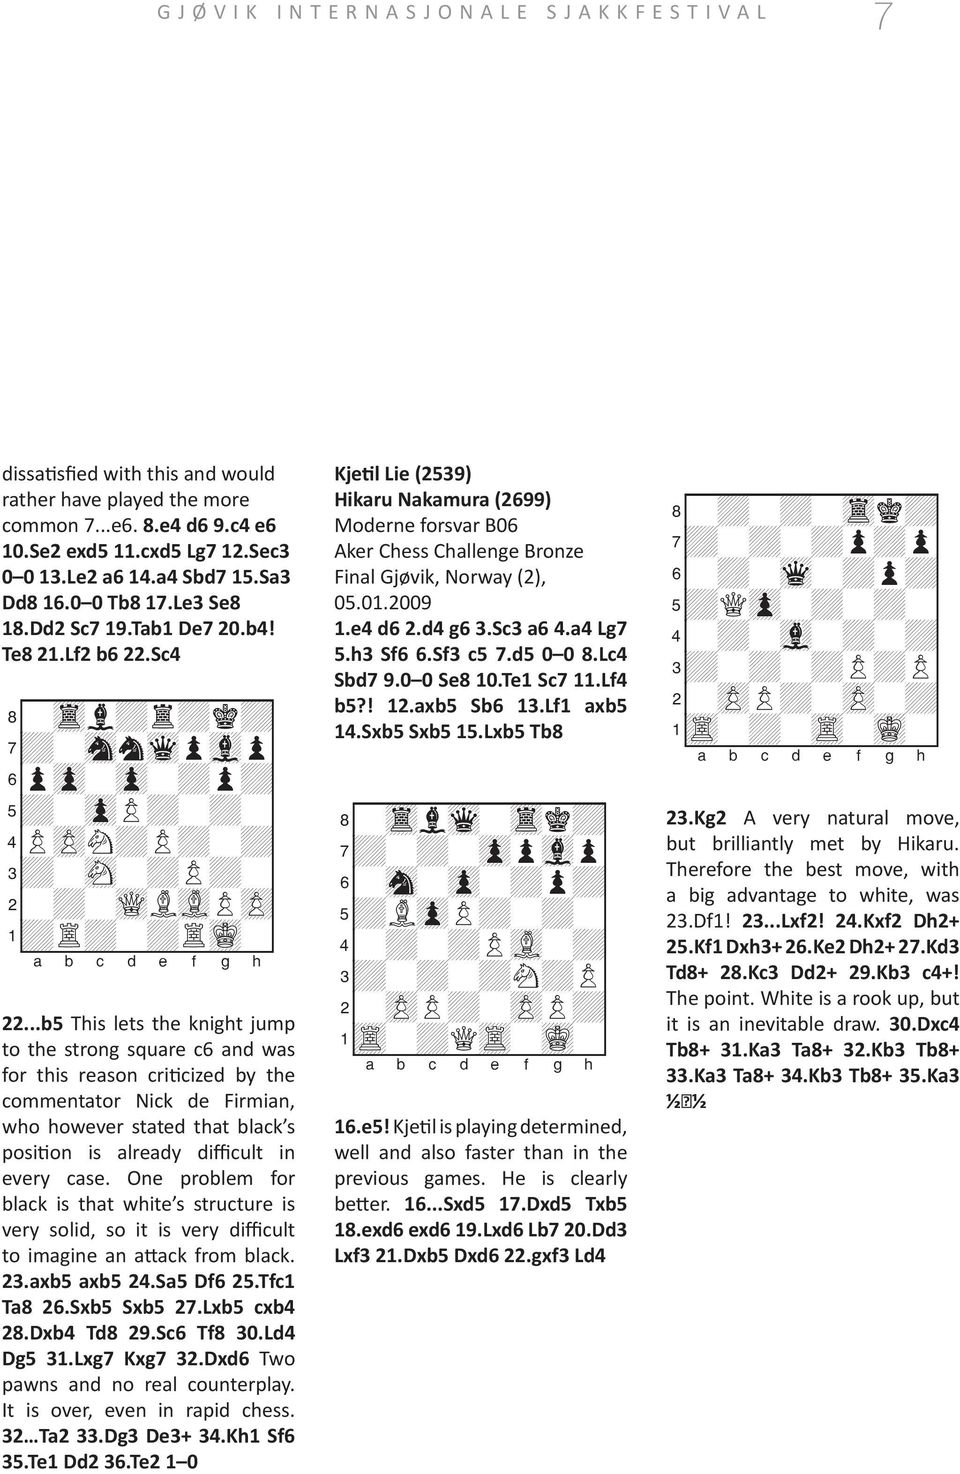 ..b5 This lets the knight jump to the strong square c6 and was for this reason criticized by the commentator Nick de Firmian, who however stated that black s position is already difficult in every case.